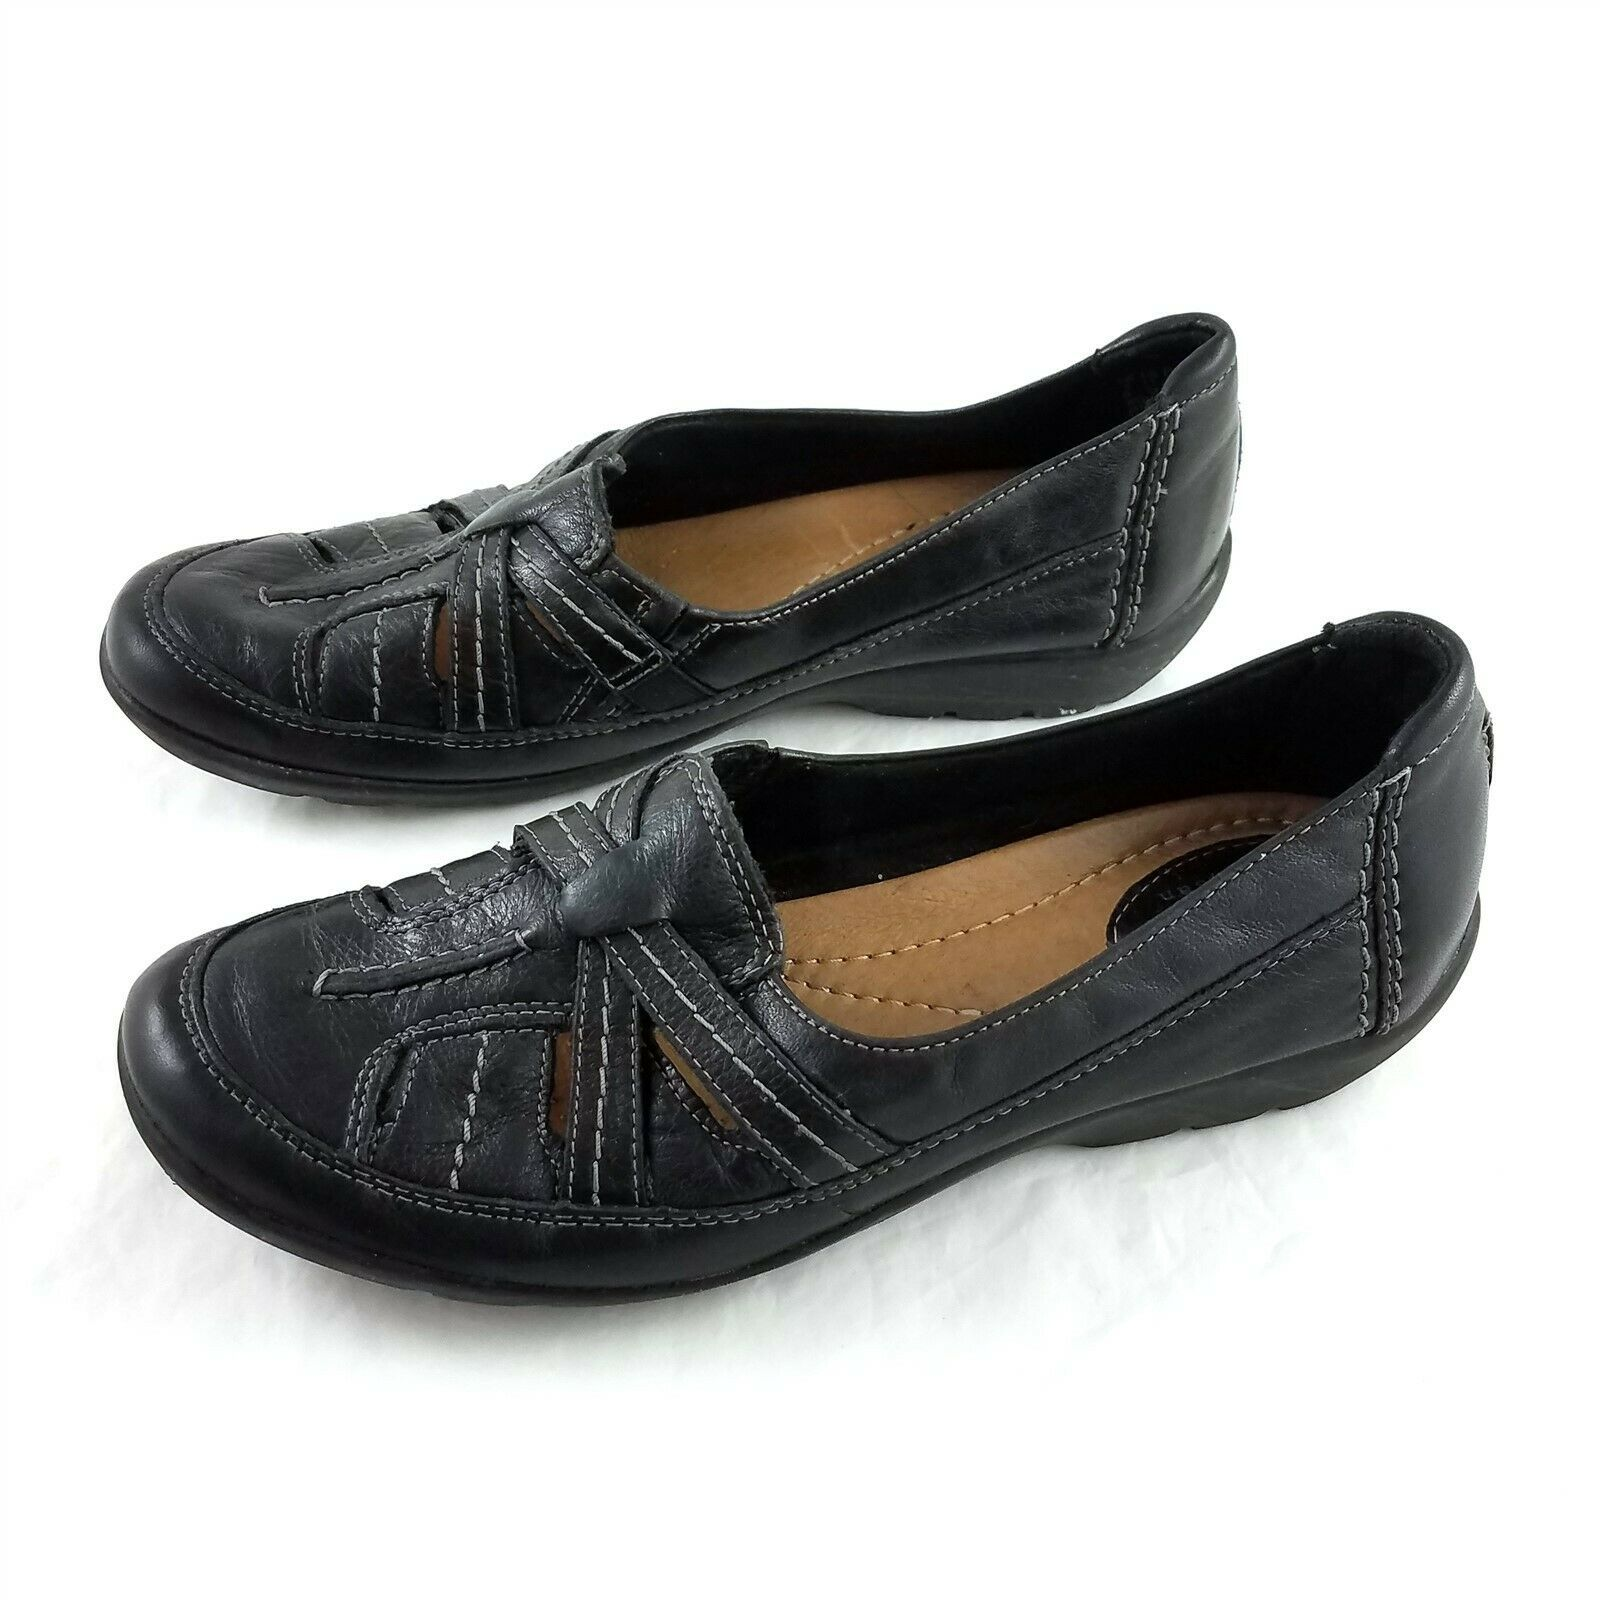 Primary image for Clarks Artisan Black Leather Loafers Flats Slip On Casual Shoes Womens 7.5 M